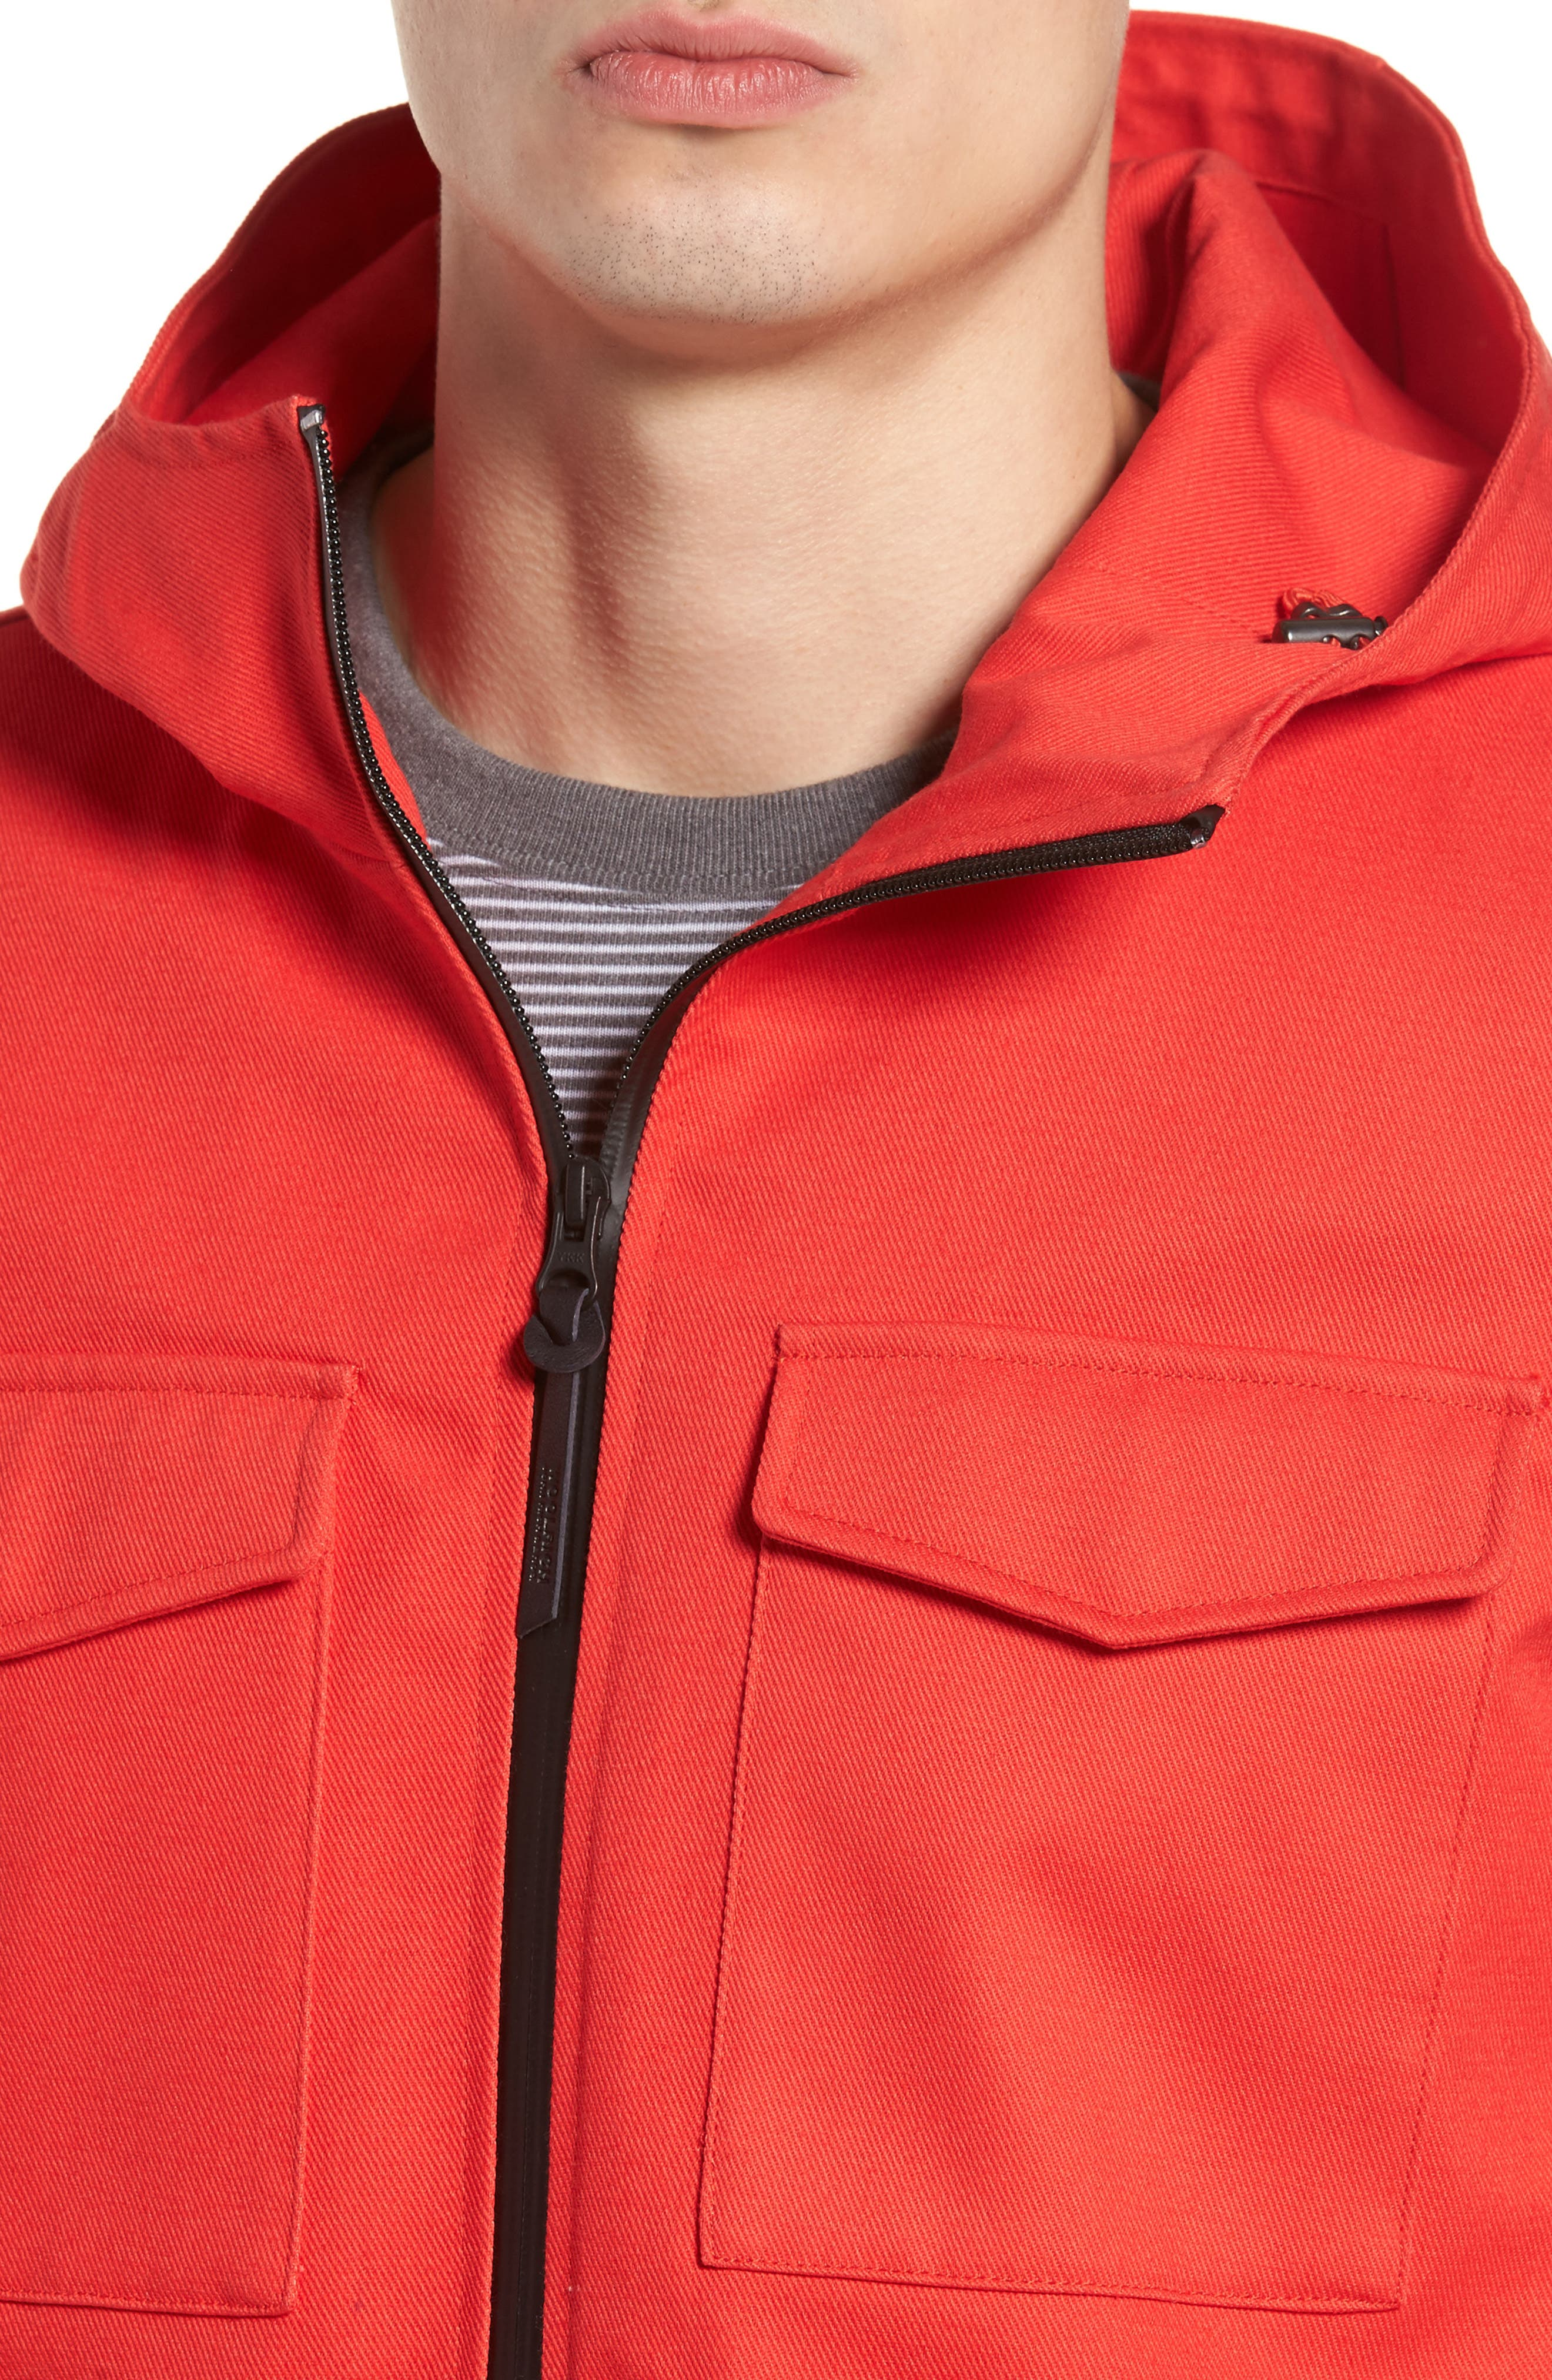 & Bros. Crew Field Jacket,                             Alternate thumbnail 4, color,                             Aurora Red